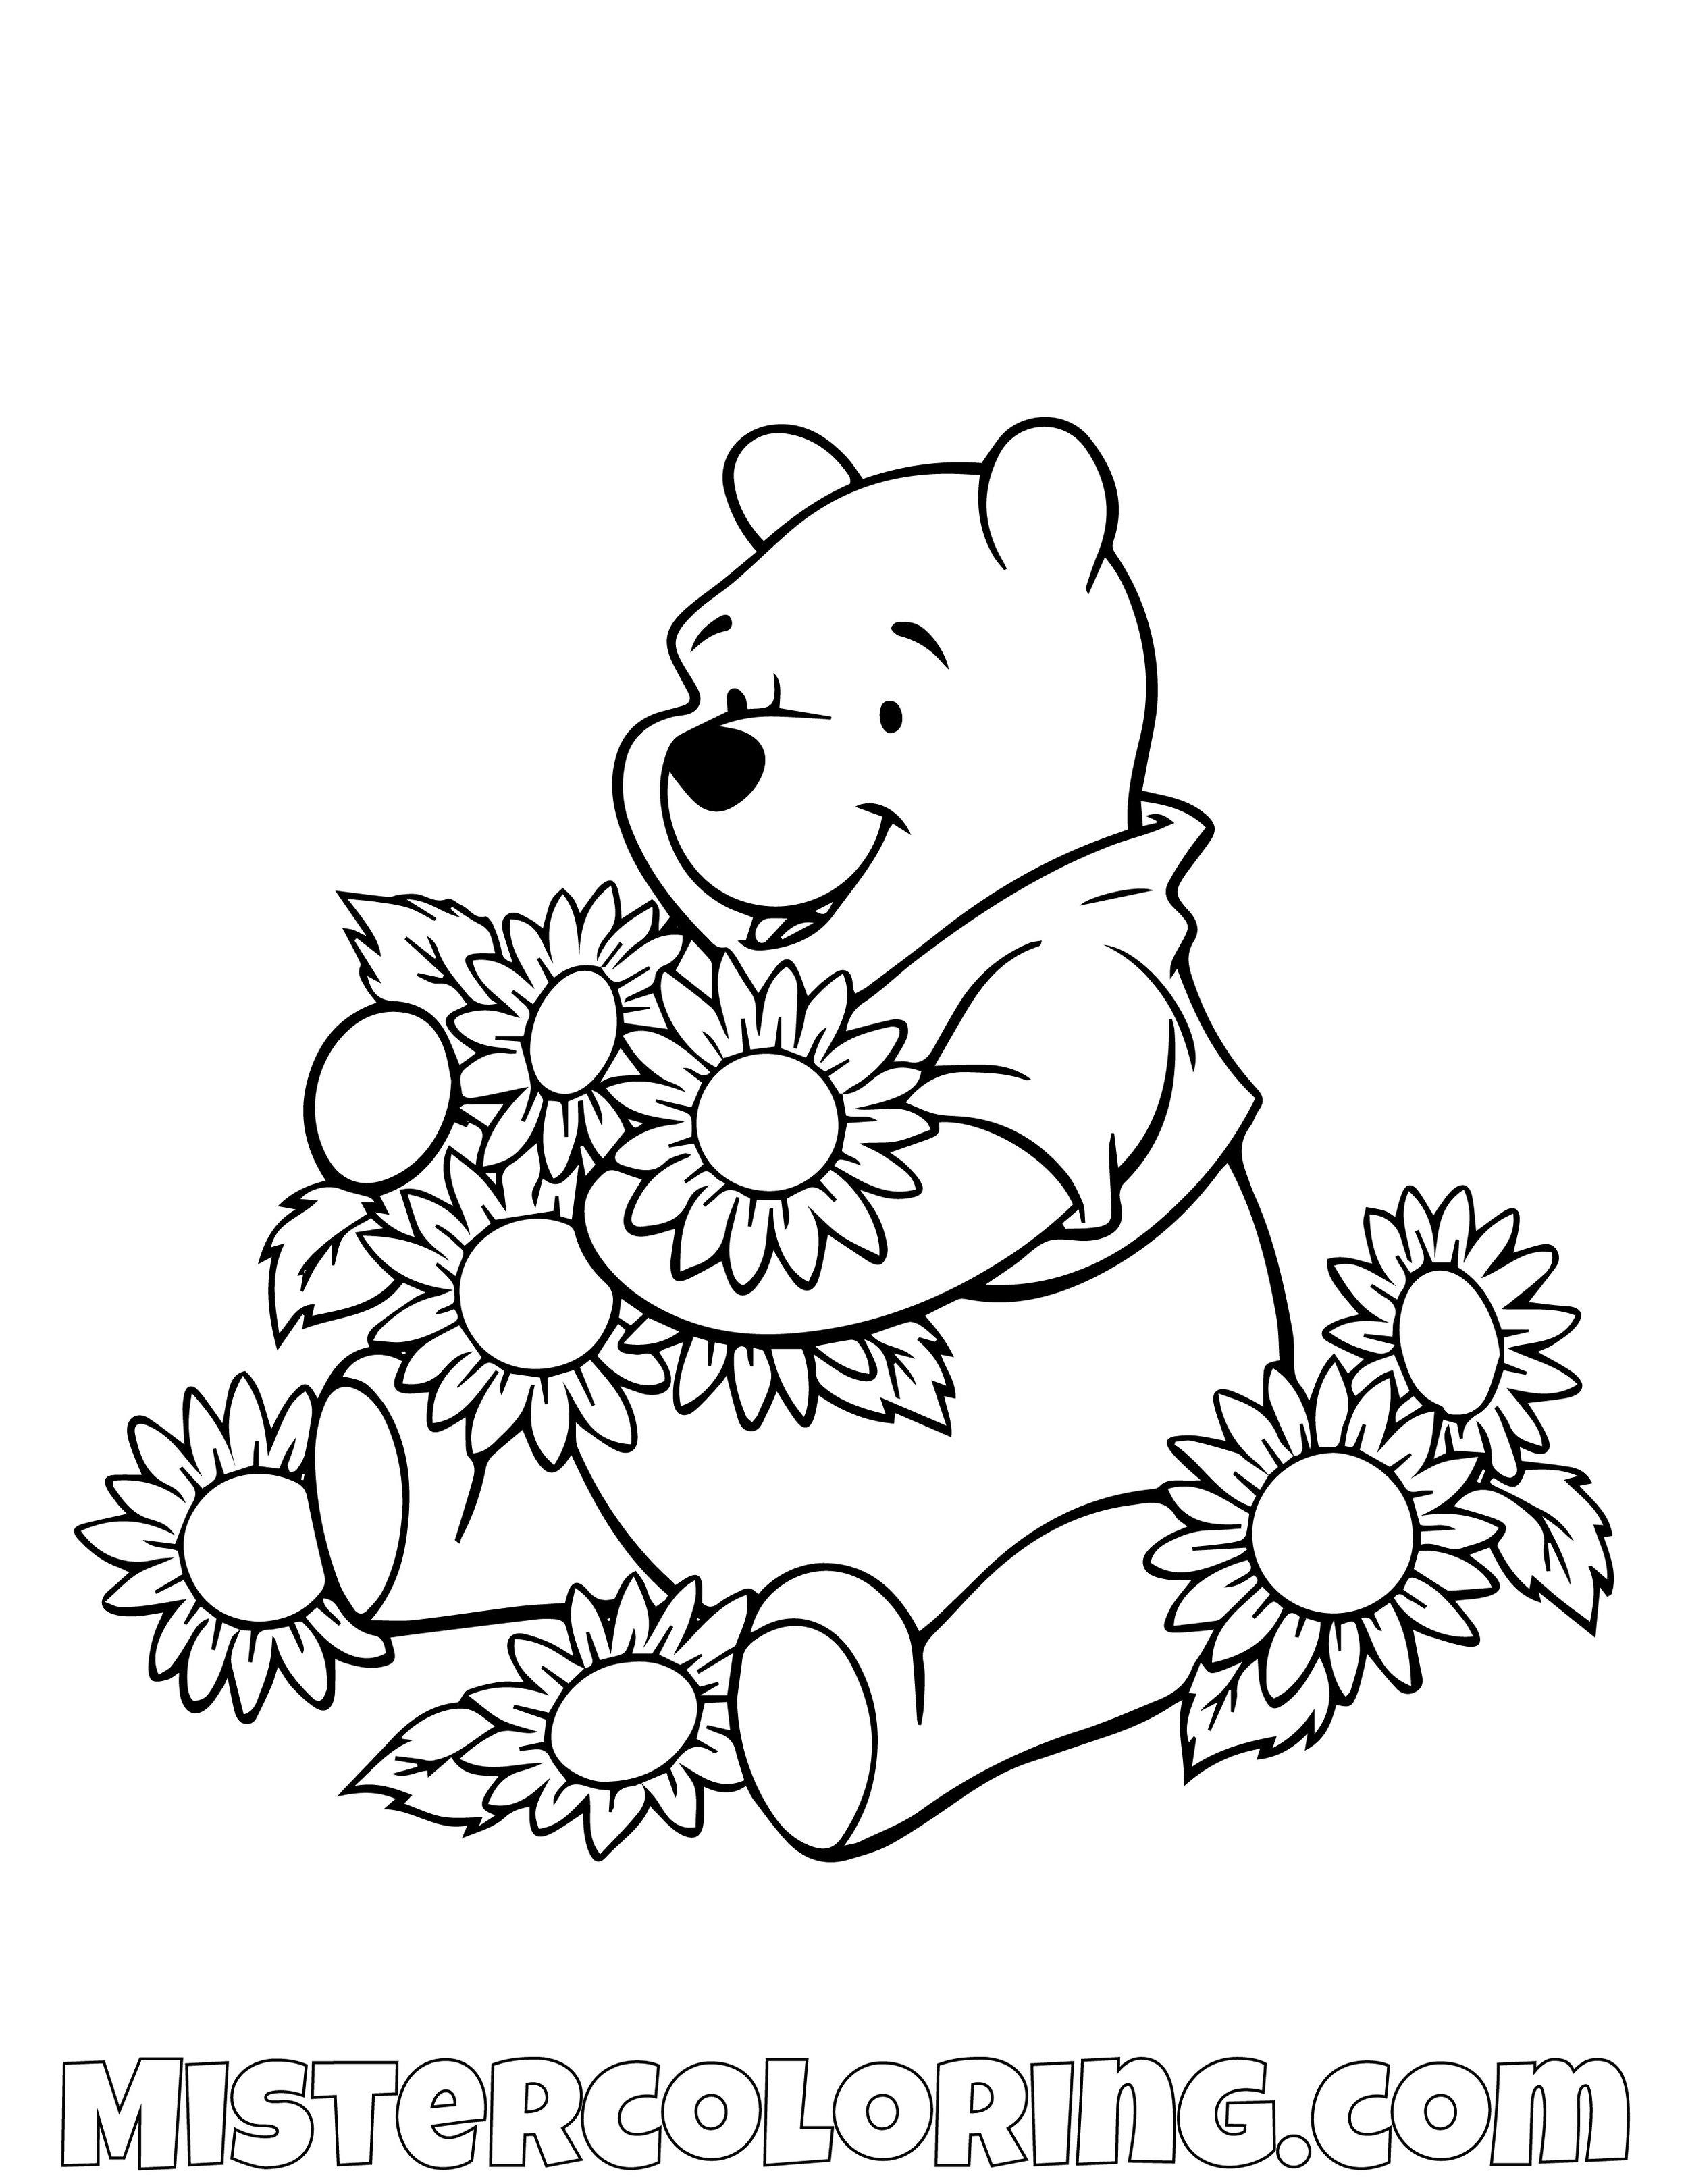 Winnie The Pooh Playing With Sun Flowers Coloring Page